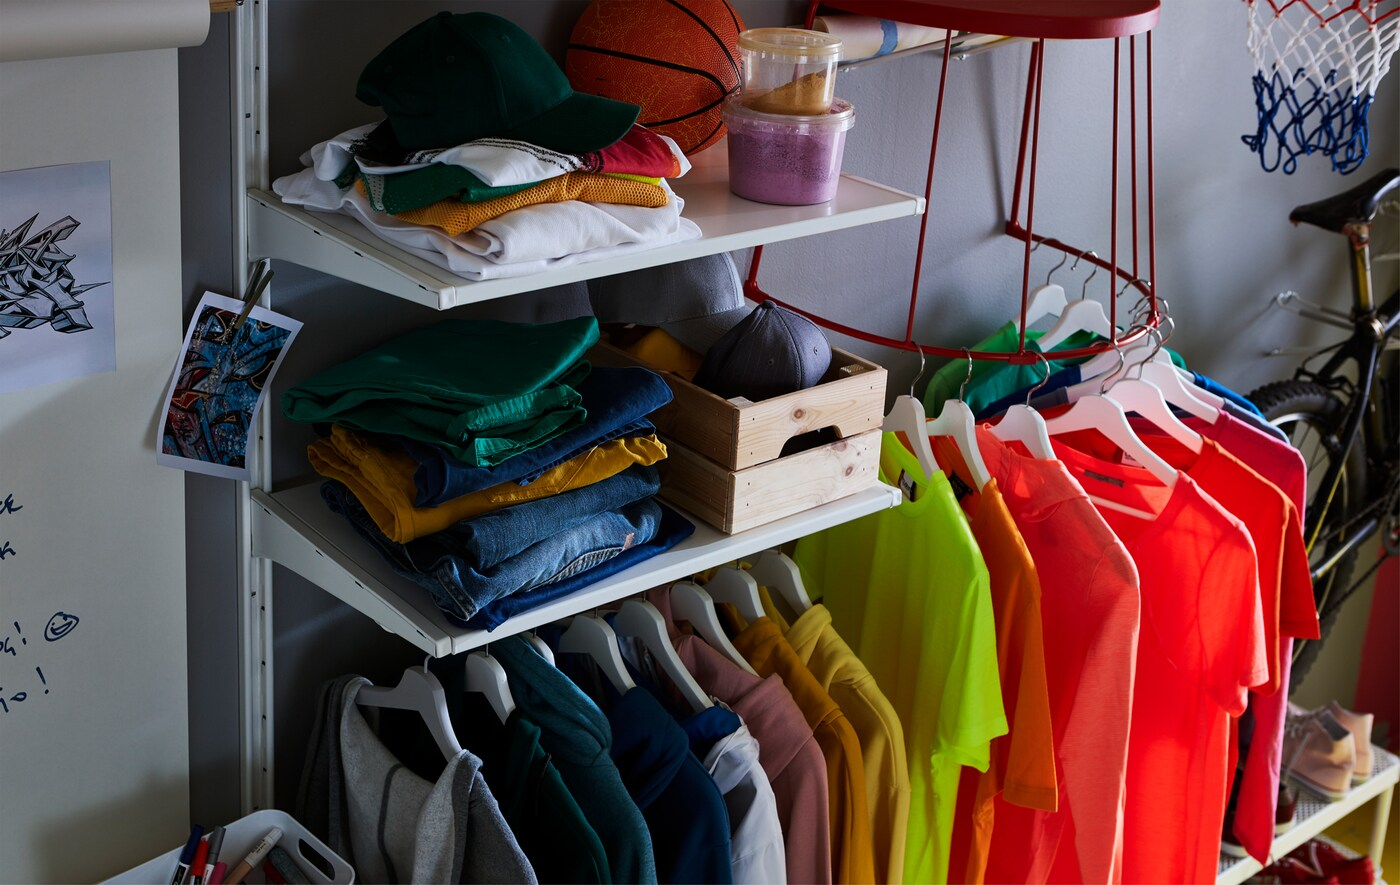 T-shirts on shelves and on hangers, hung on the bottom steel frame of a red IKEA TRANARÖ stool attached to the wall.